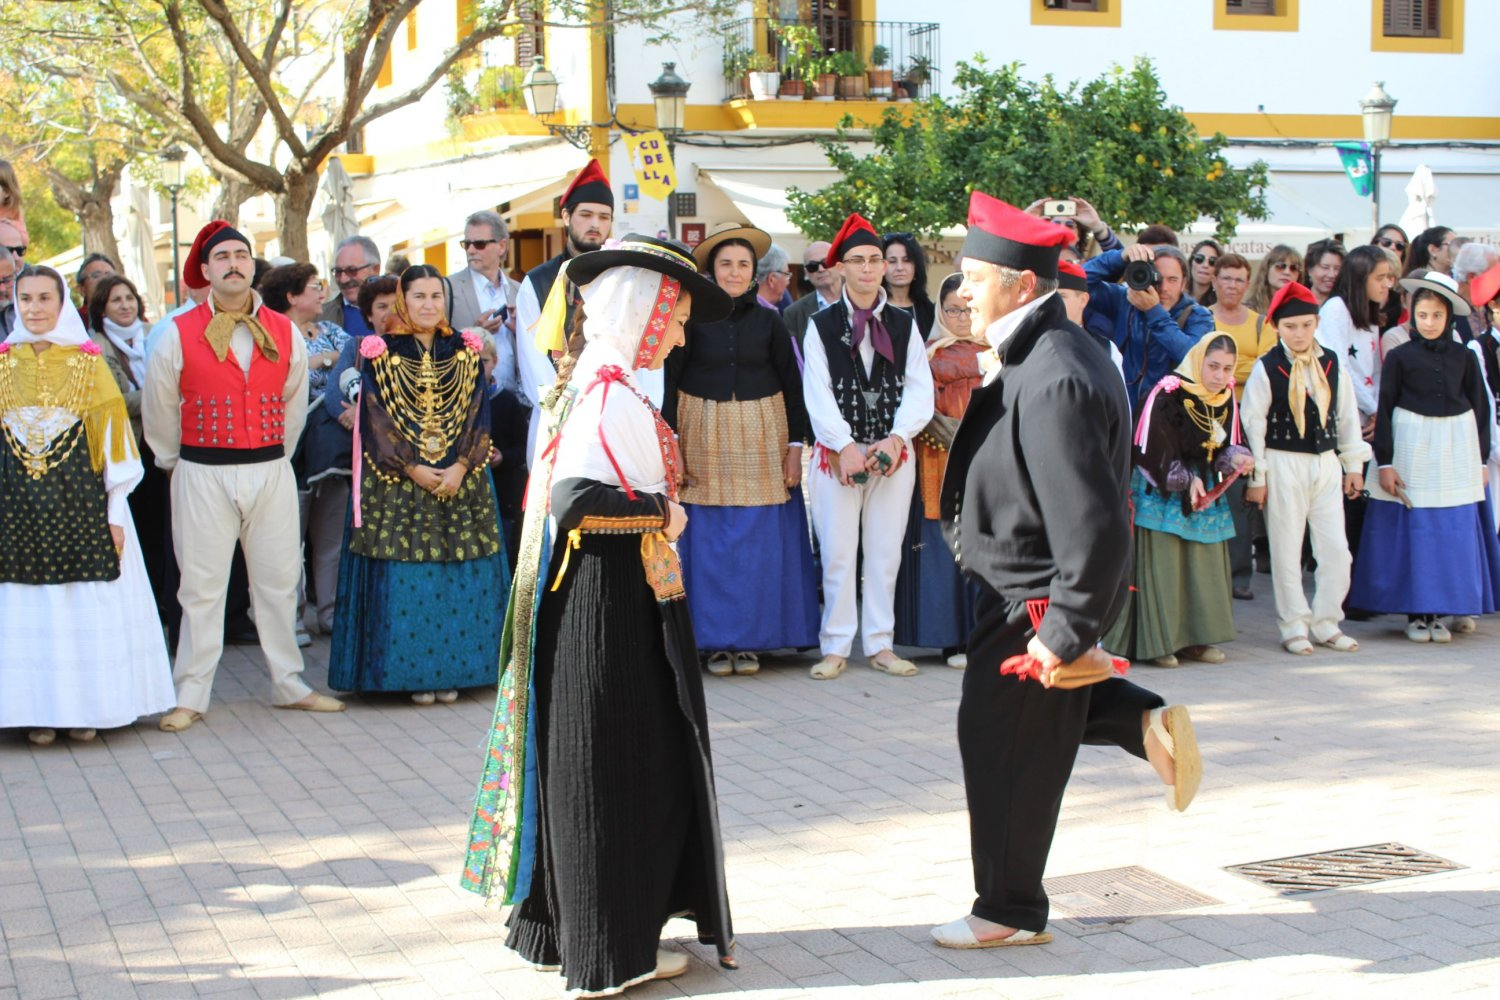 f022ab80b Fiesta time - discover the local celebrations and traditions of Ibiza.